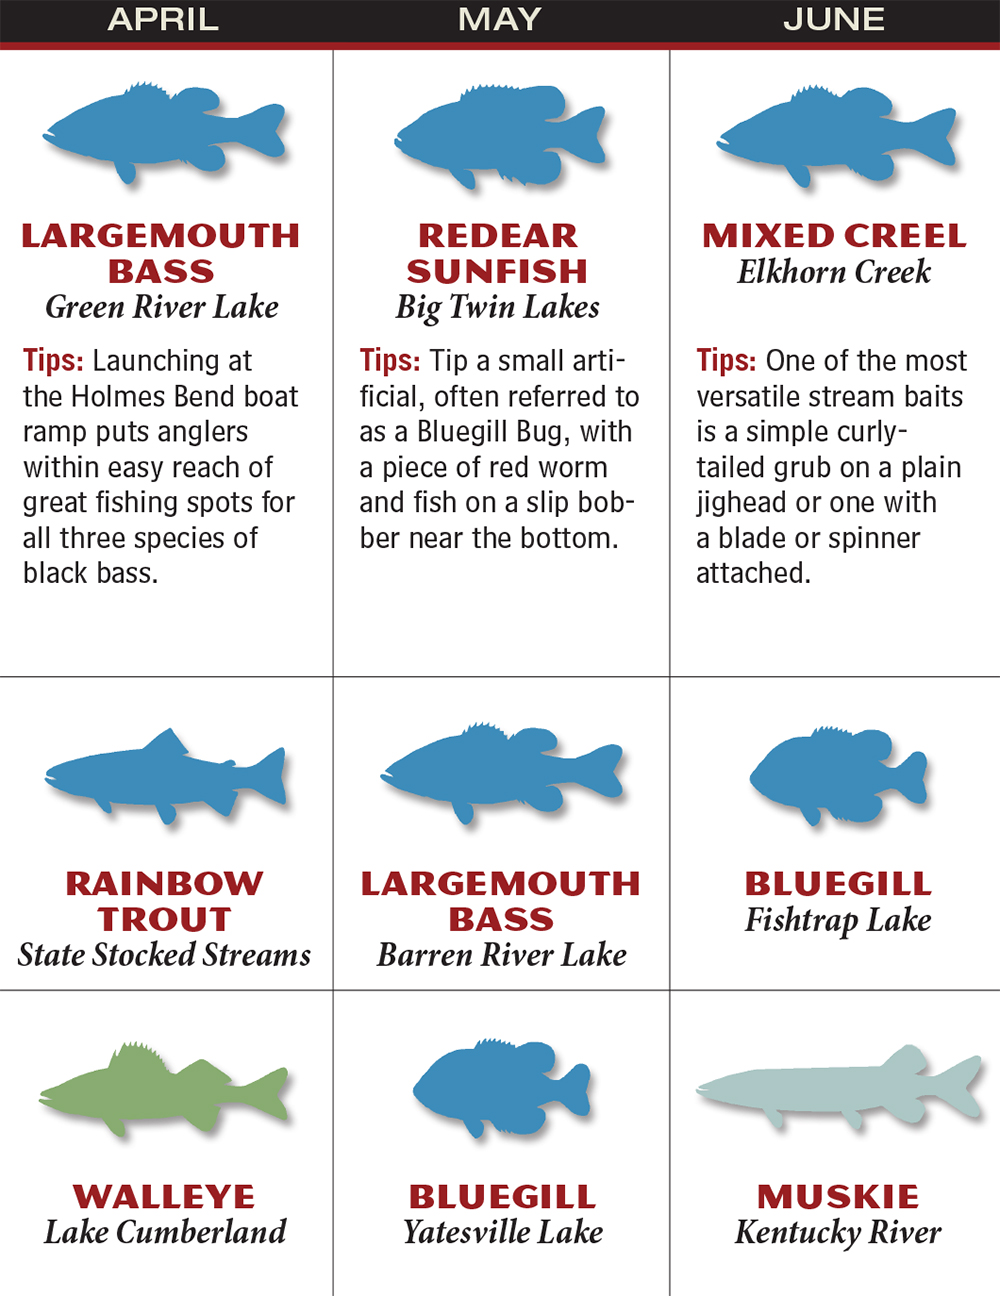 Kentucky 2016 Fishing Calendar